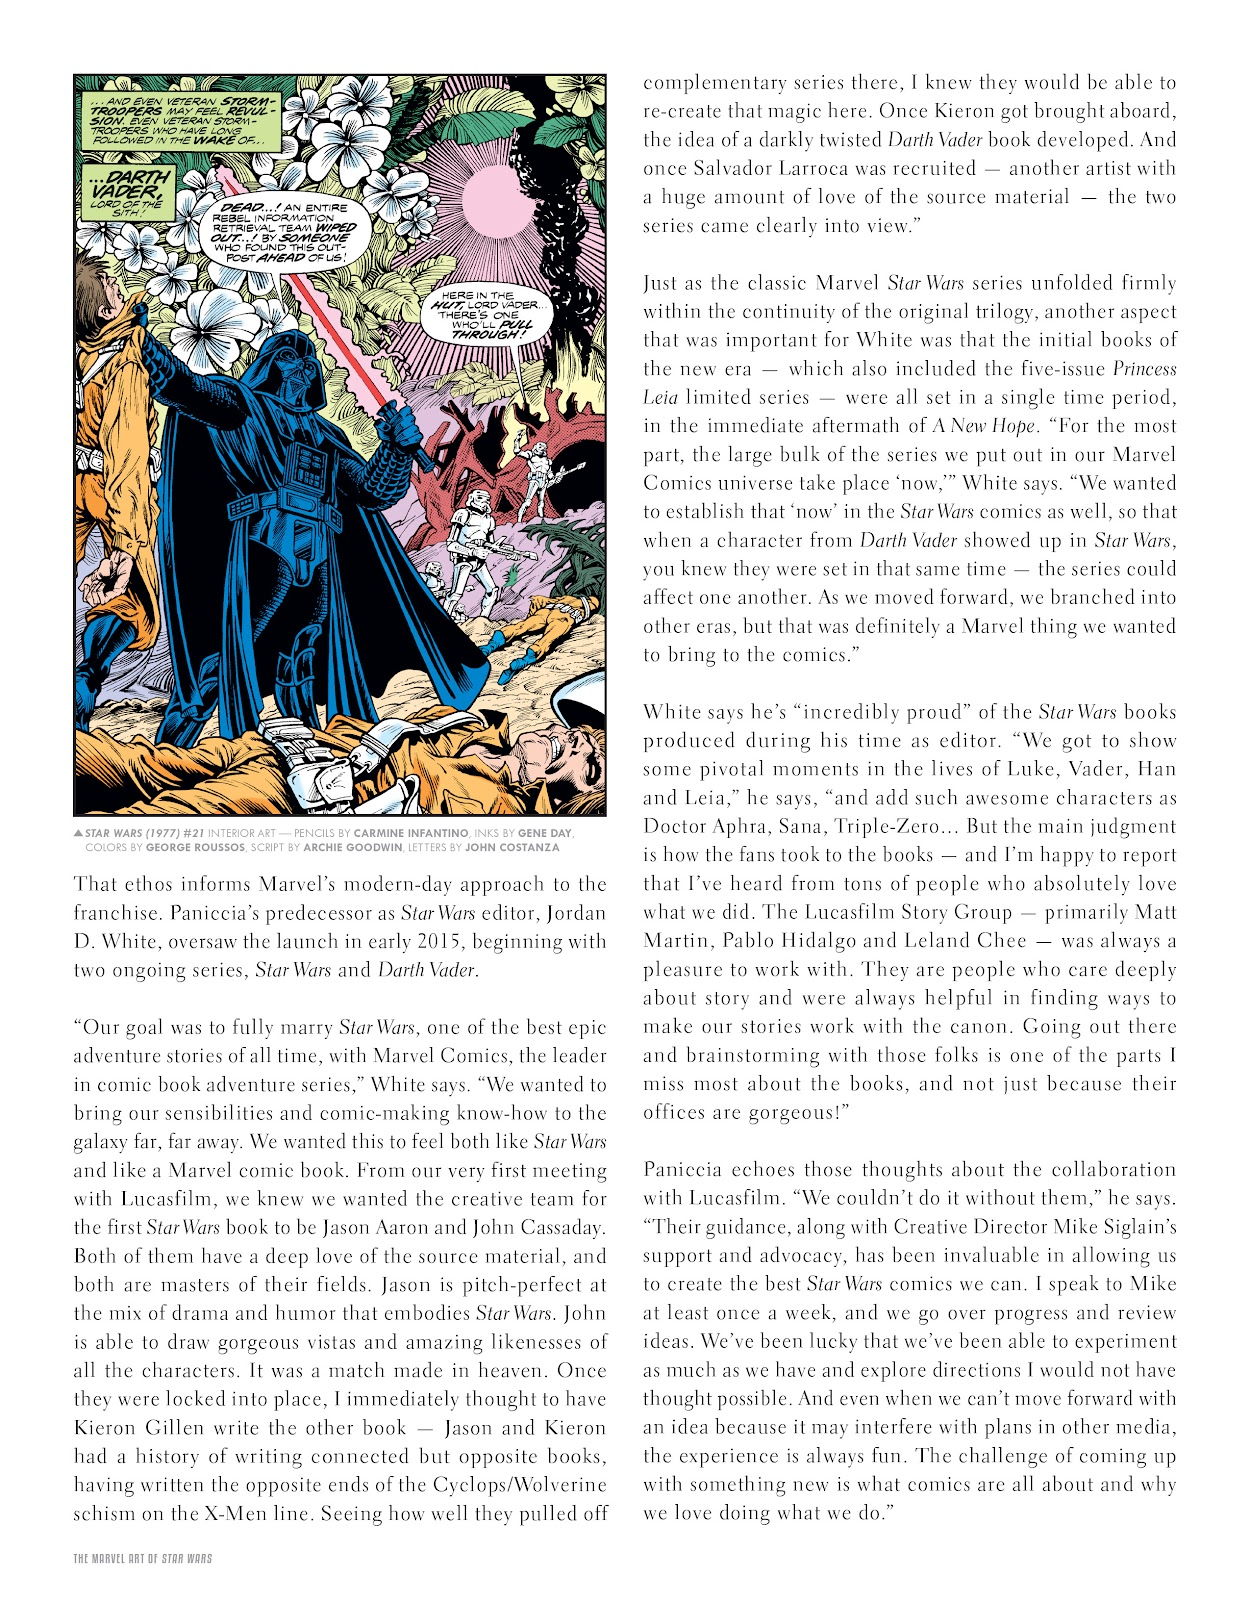 Read online The Marvel Art of Star Wars comic -  Issue # TPB (Part 1) - 7